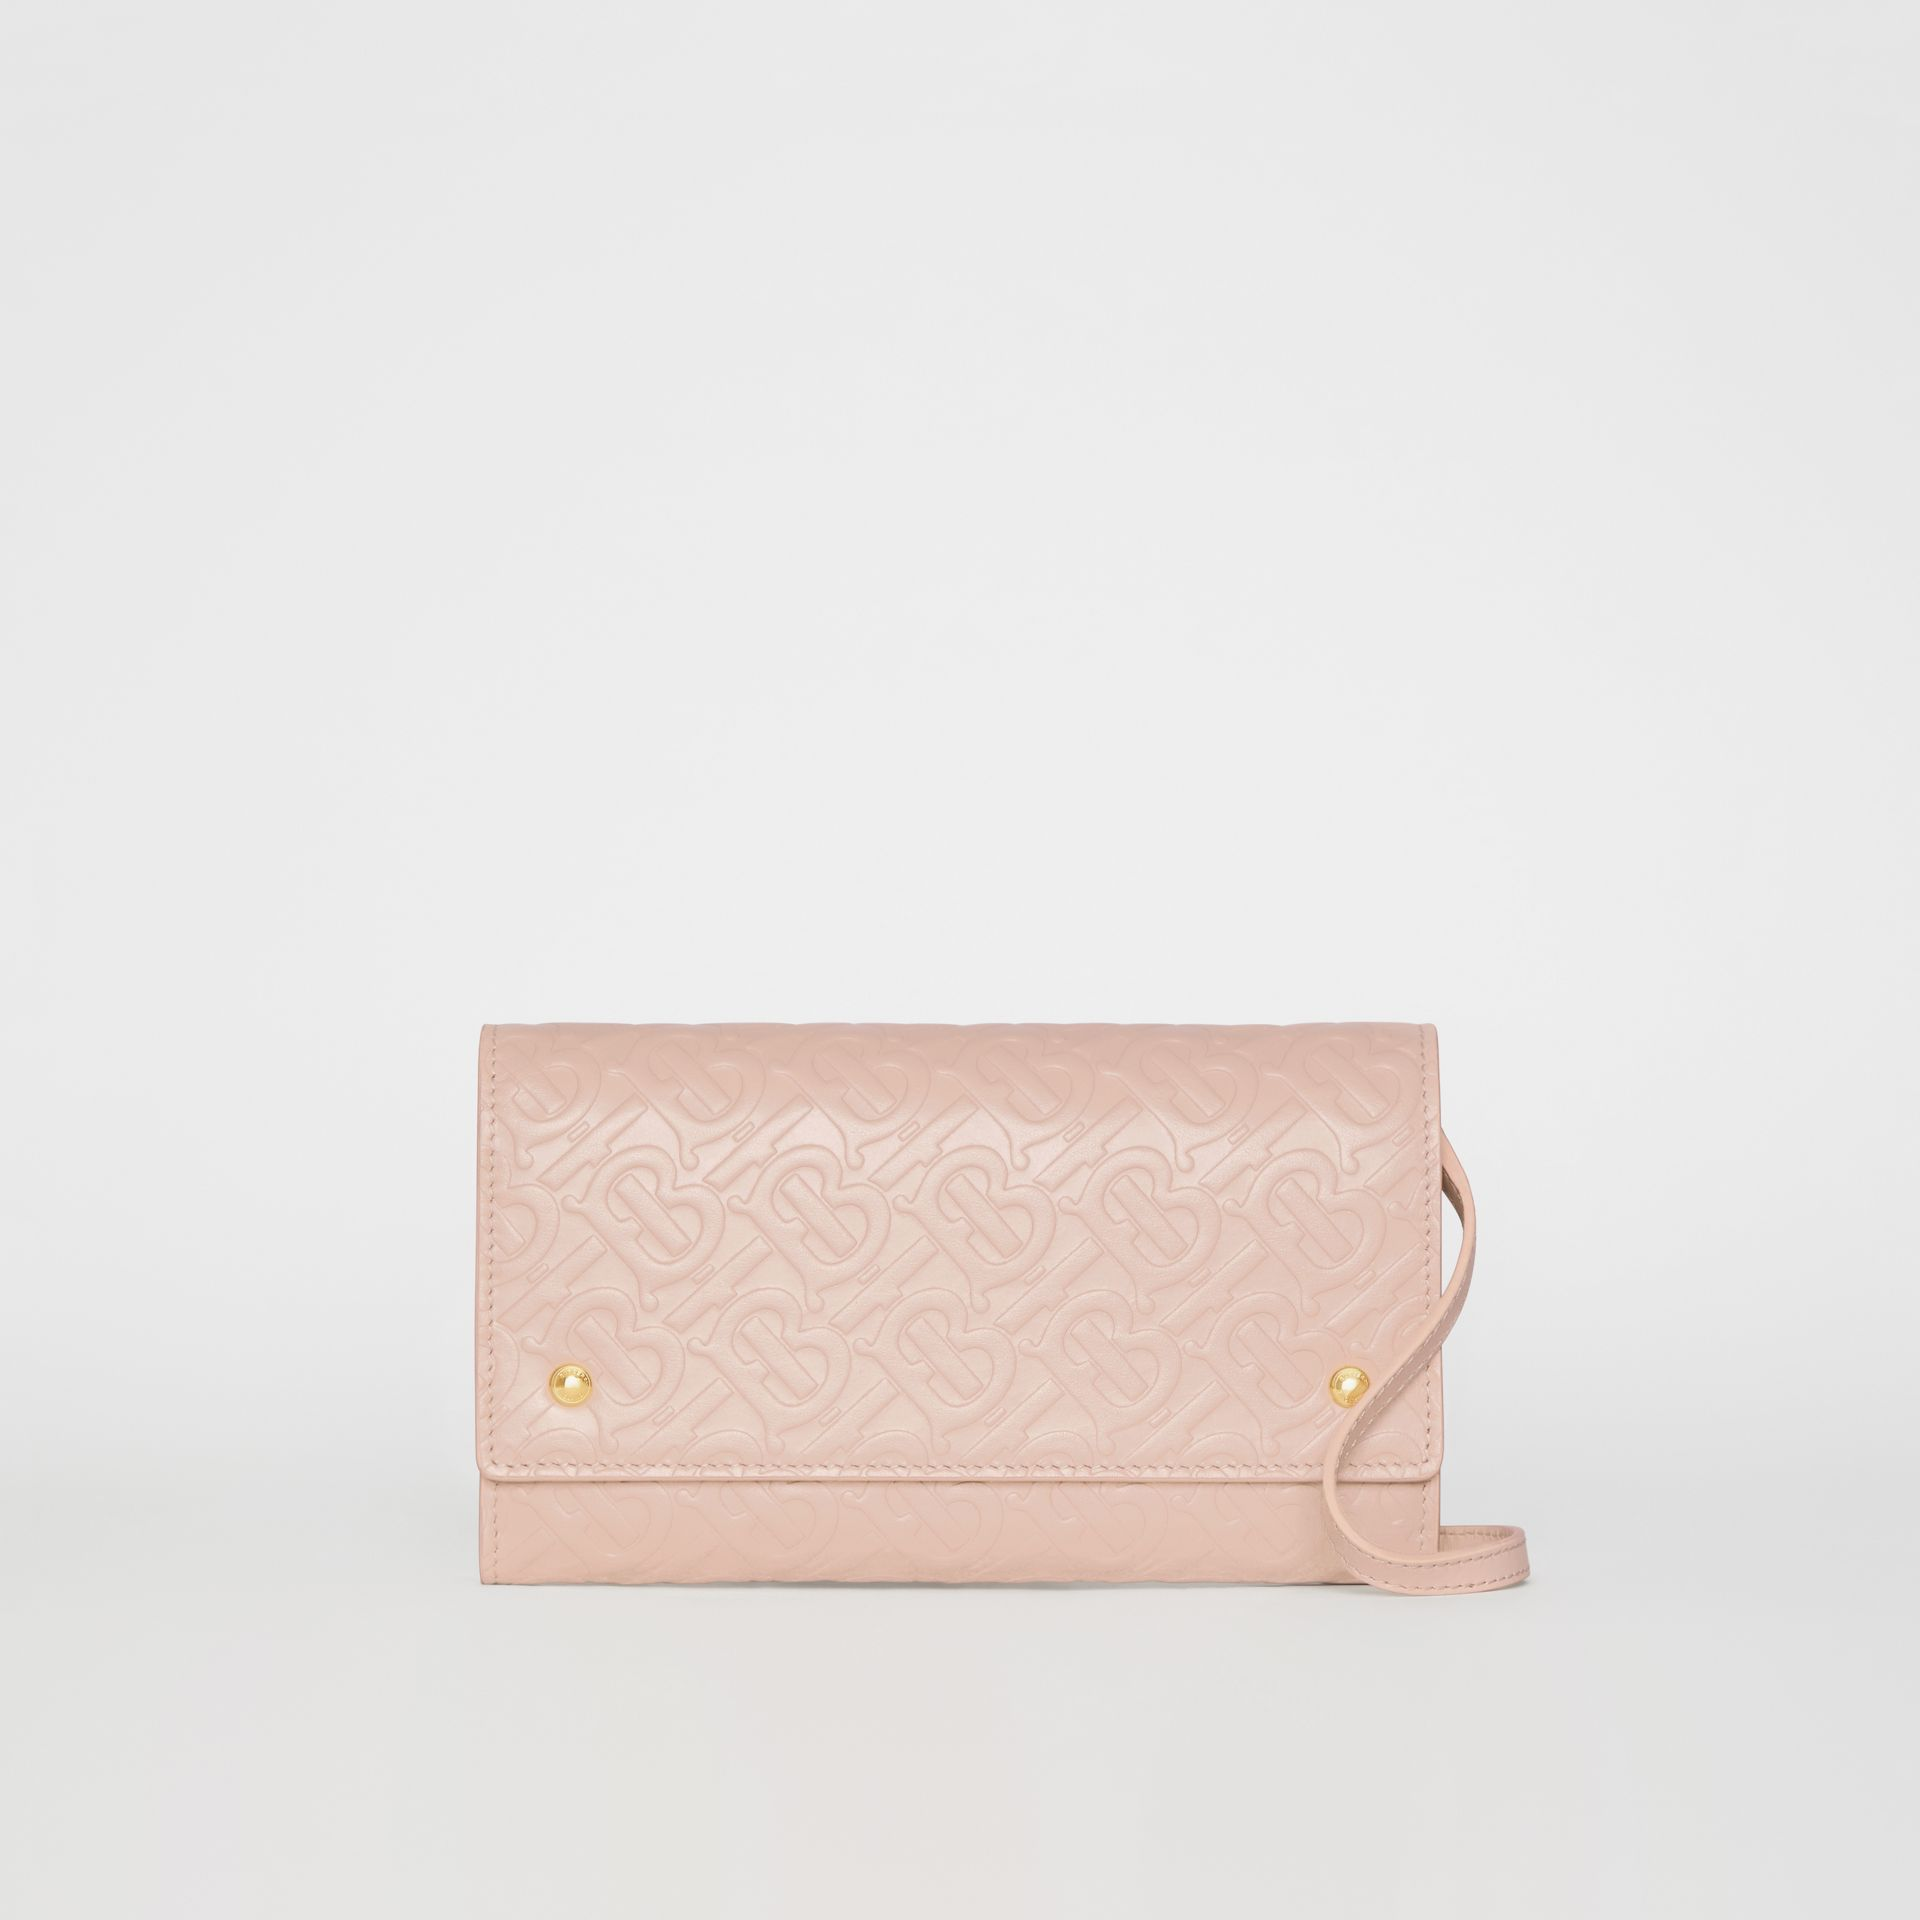 Portefeuille en cuir Monogram et sangle amovible (Beige Rose) - Femme | Burberry Canada - photo de la galerie 0